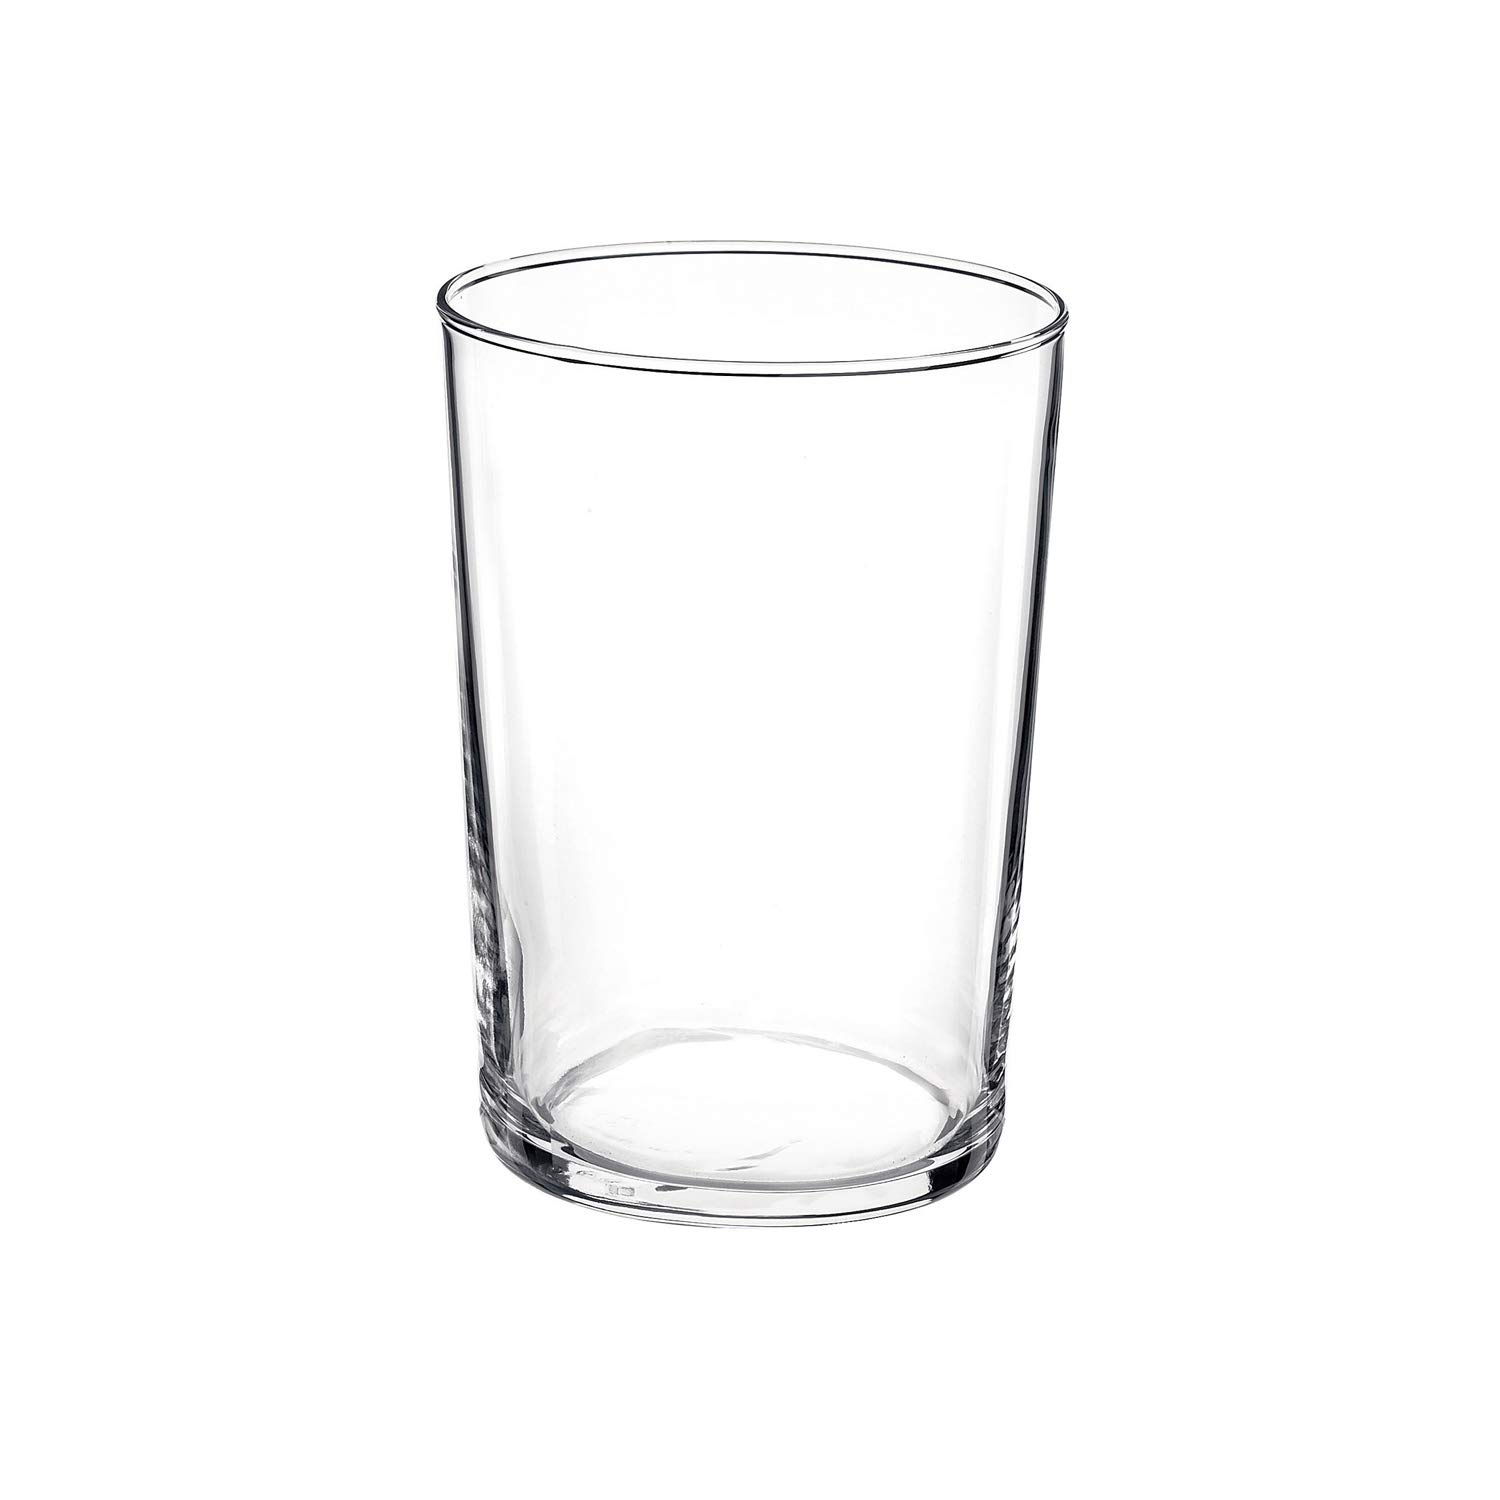 Bormioli Rocco Bodega Collection Glassware - Set Of 12 Maxi 17 Ounce Drinking Glasses For Water, Beverages & Cocktails - 17oz Clear Tempered Glass Tumblers by Bormioli Rocco